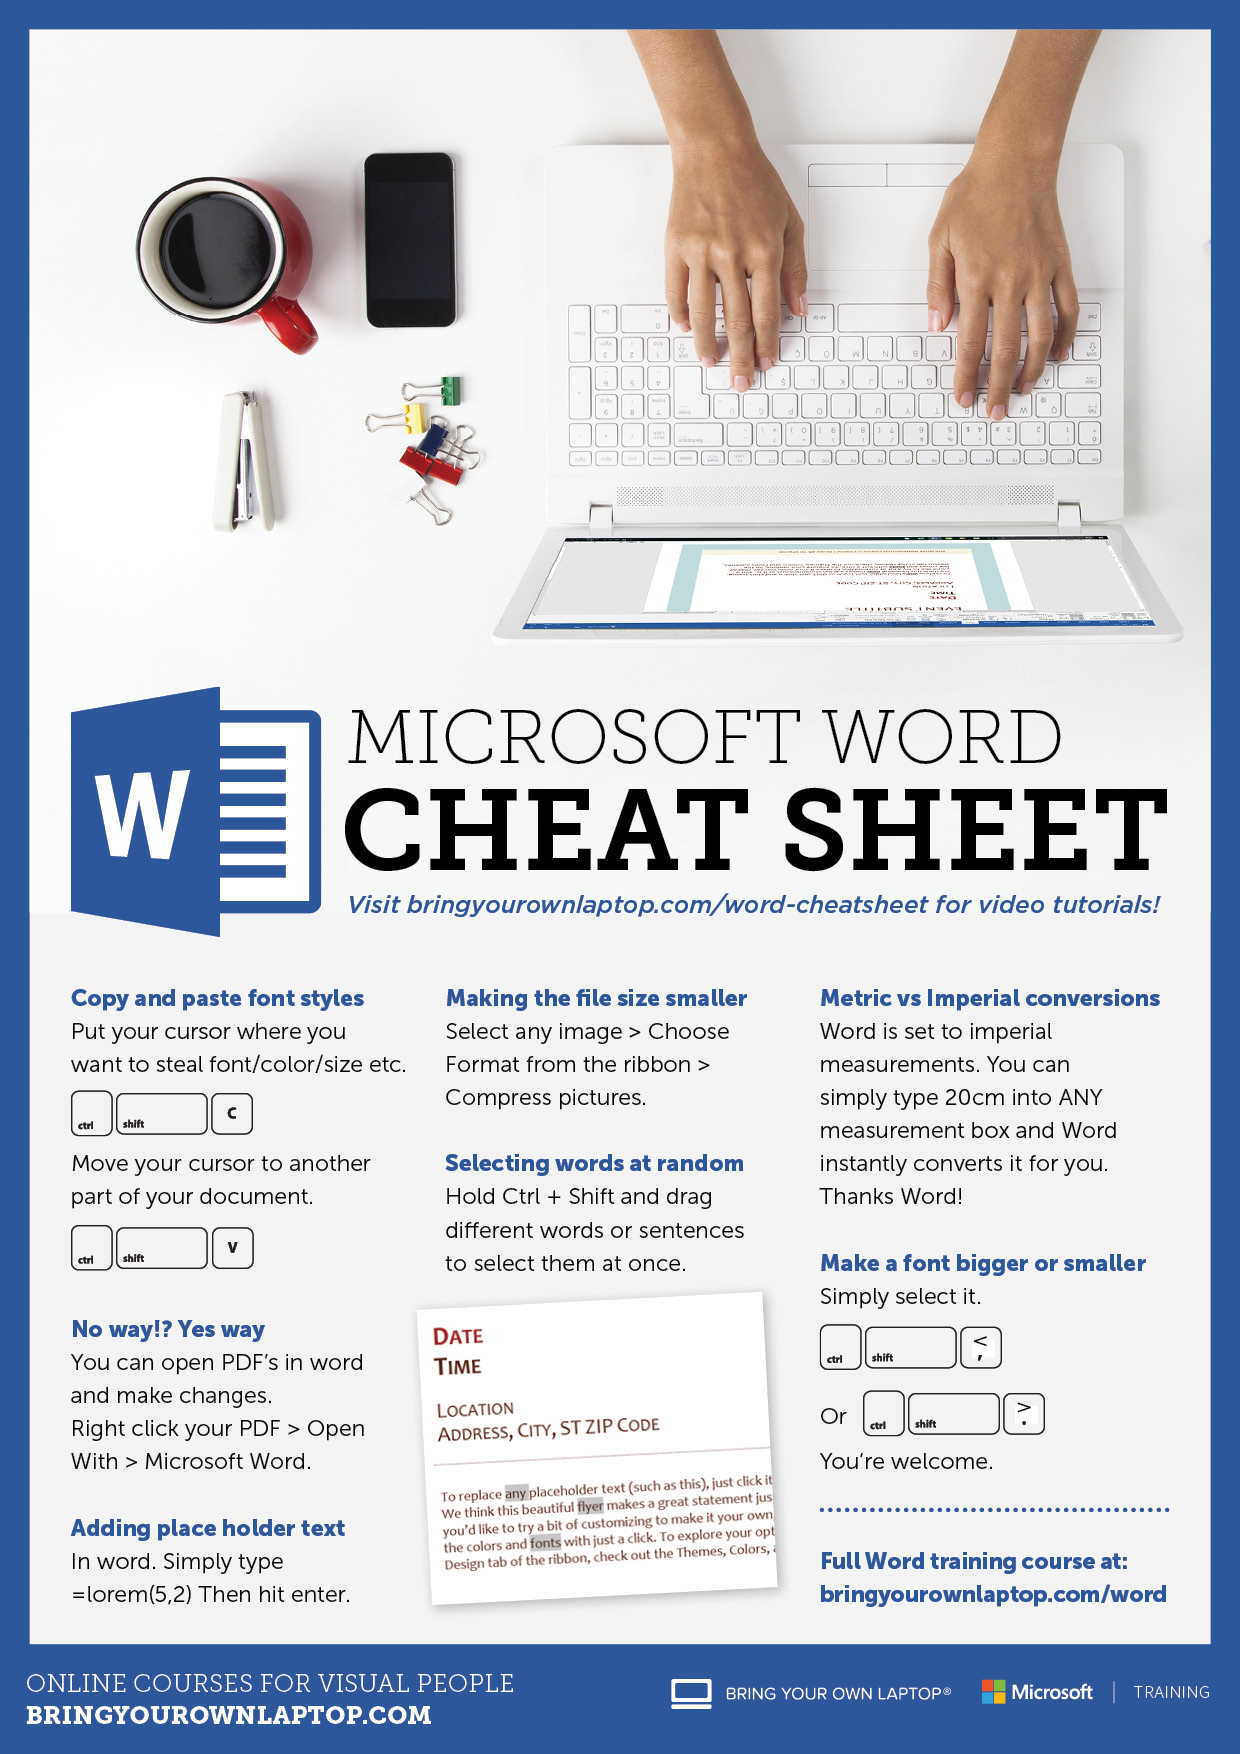 Microsoft Word 2016 Cheat Sheet | Bring Your Own Laptop